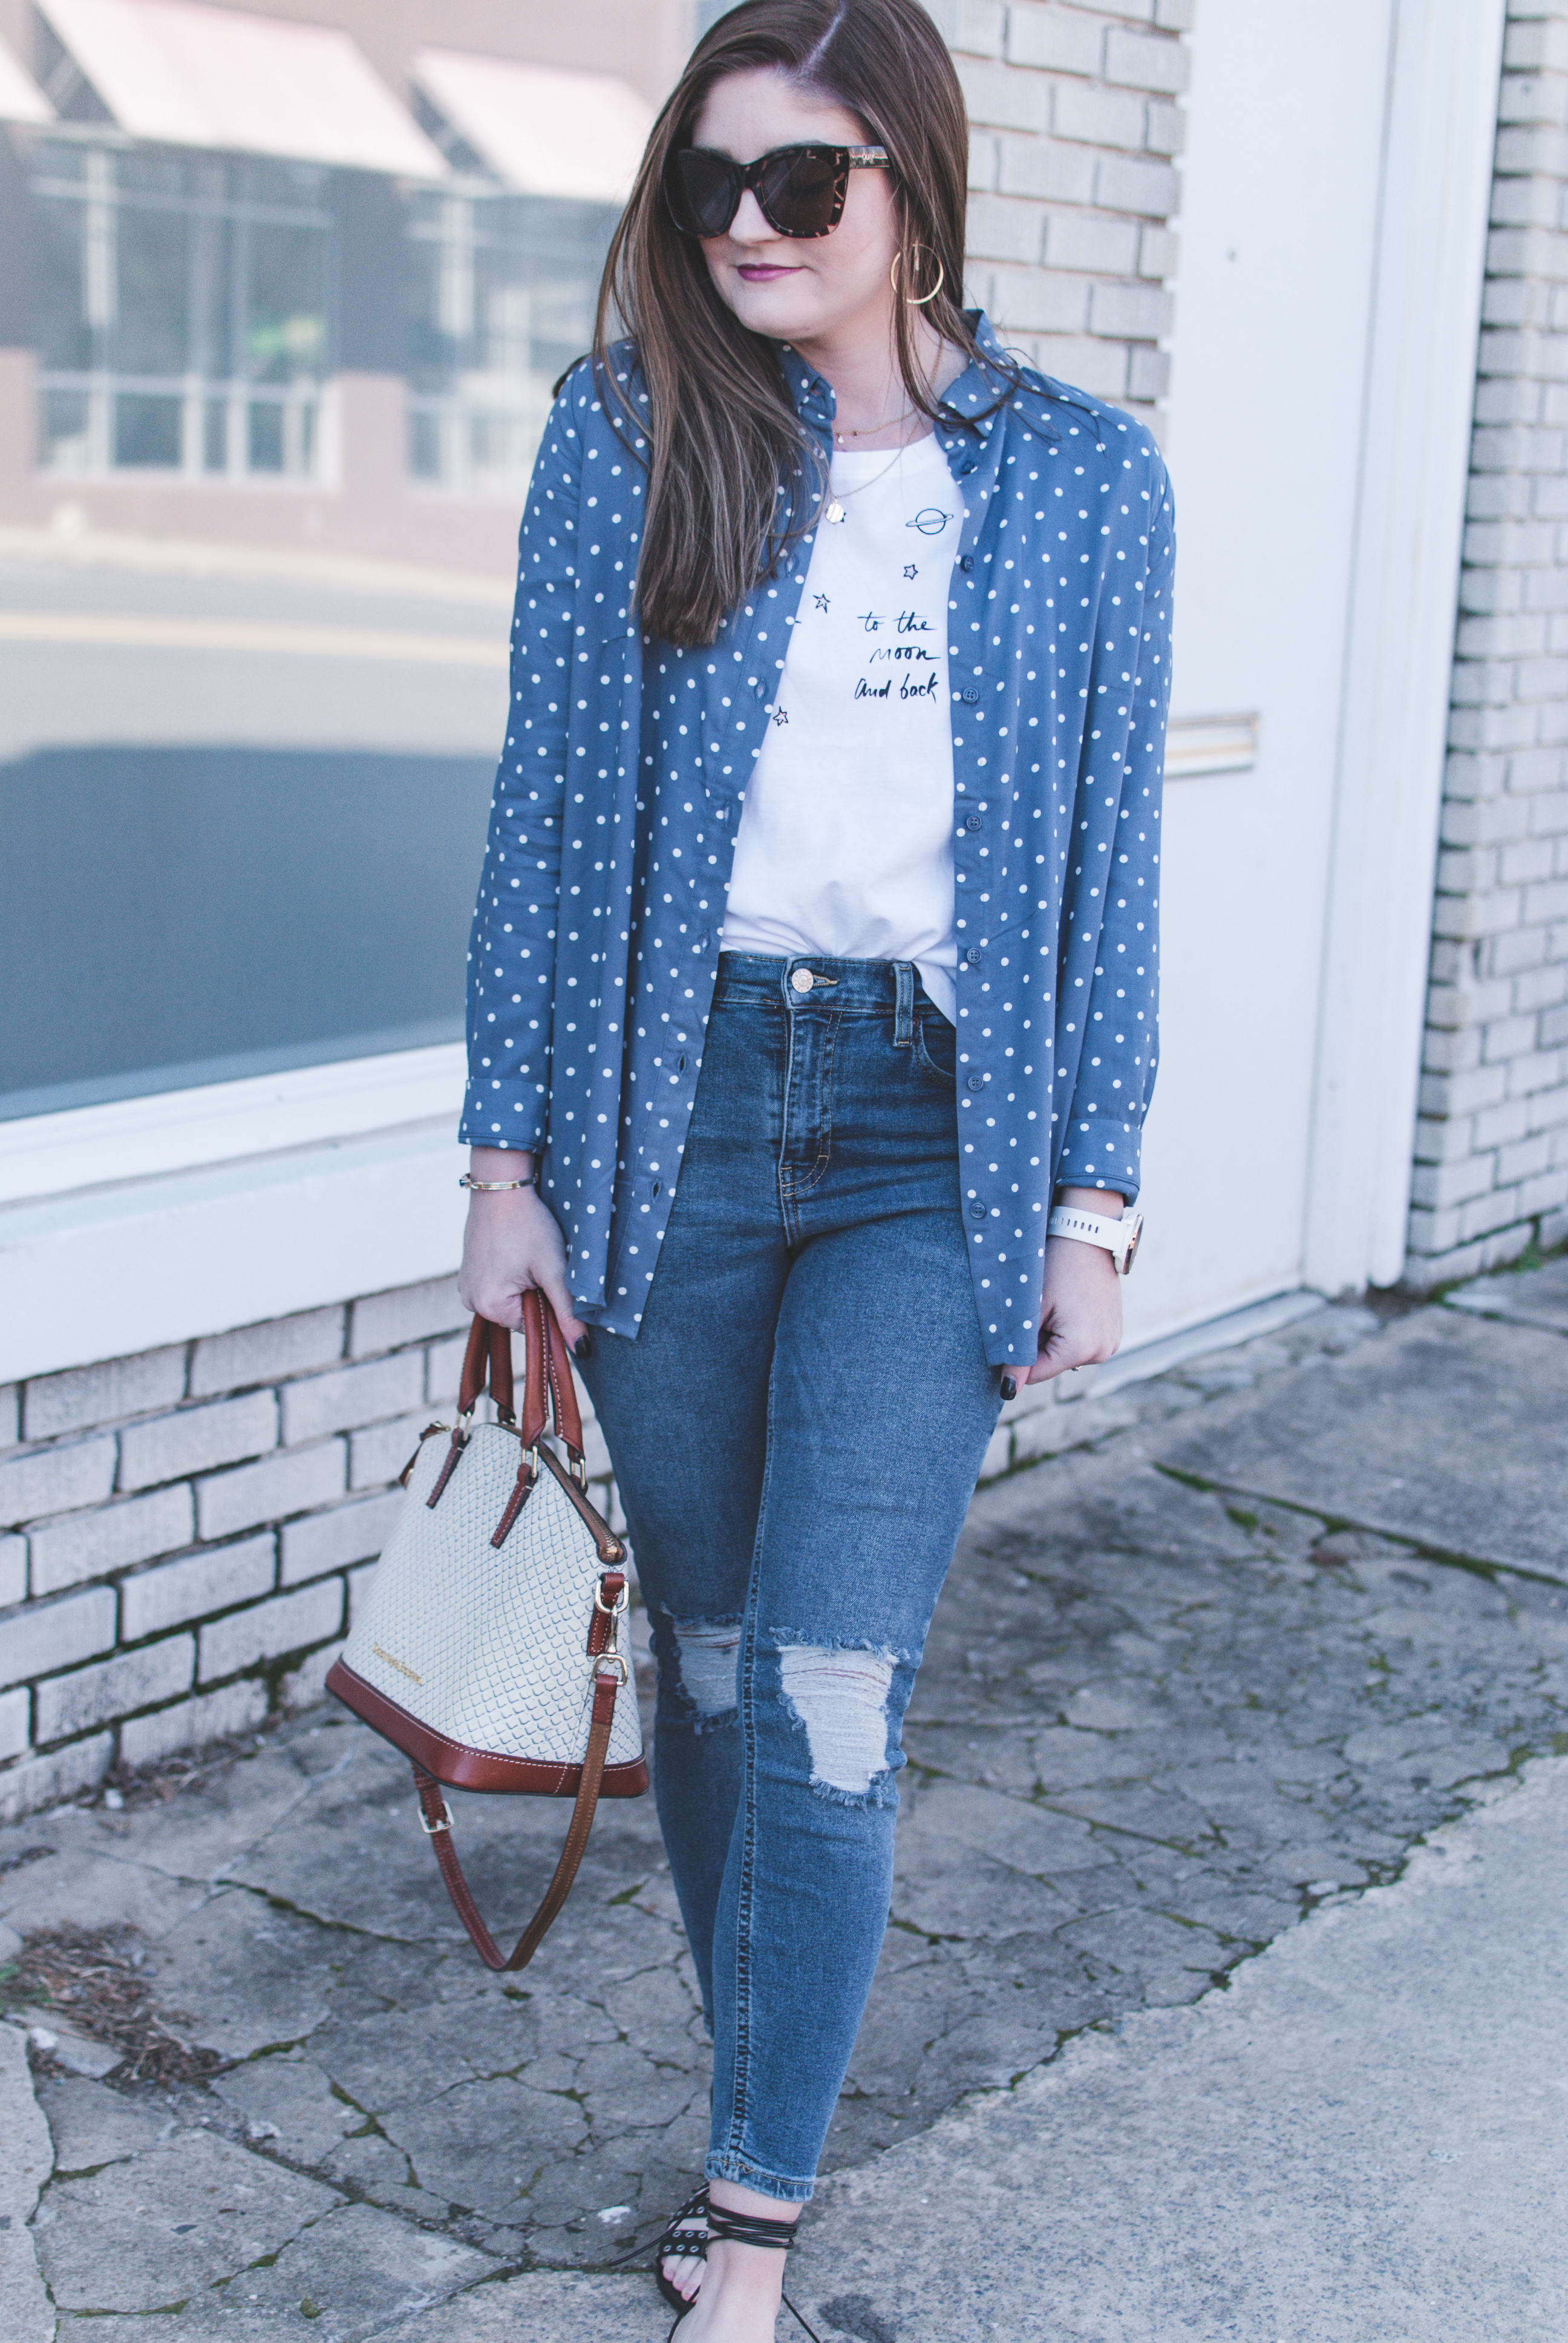 Polka dot button down and graphic tee